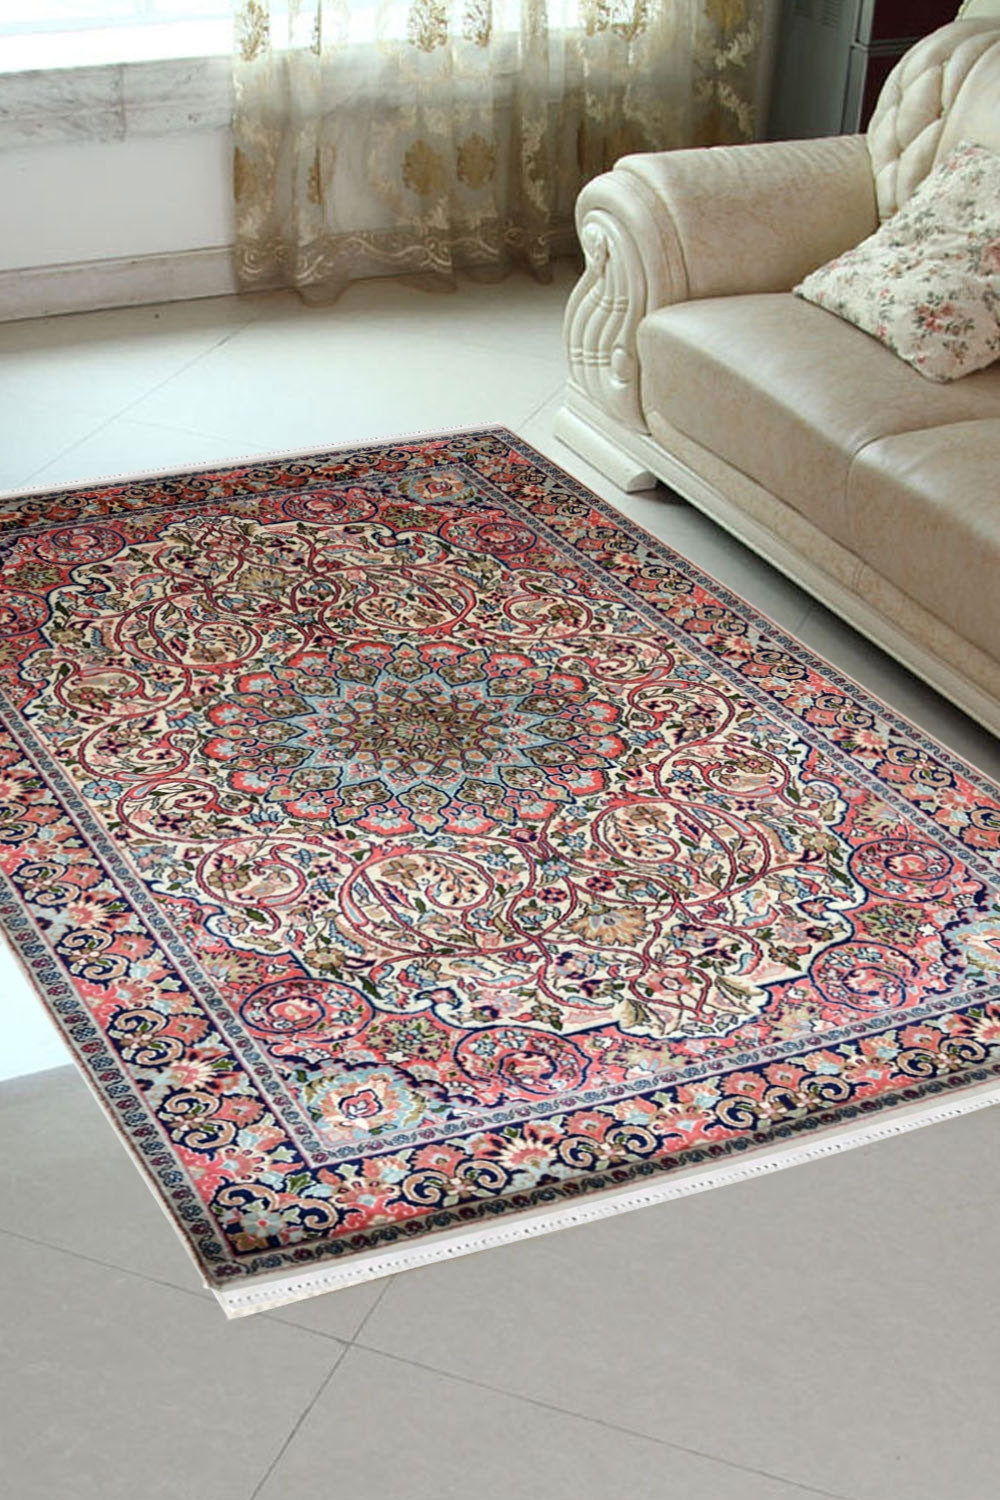 Shop Beautiful Persian Ardabil Handknotted Indian Silk Rugs And